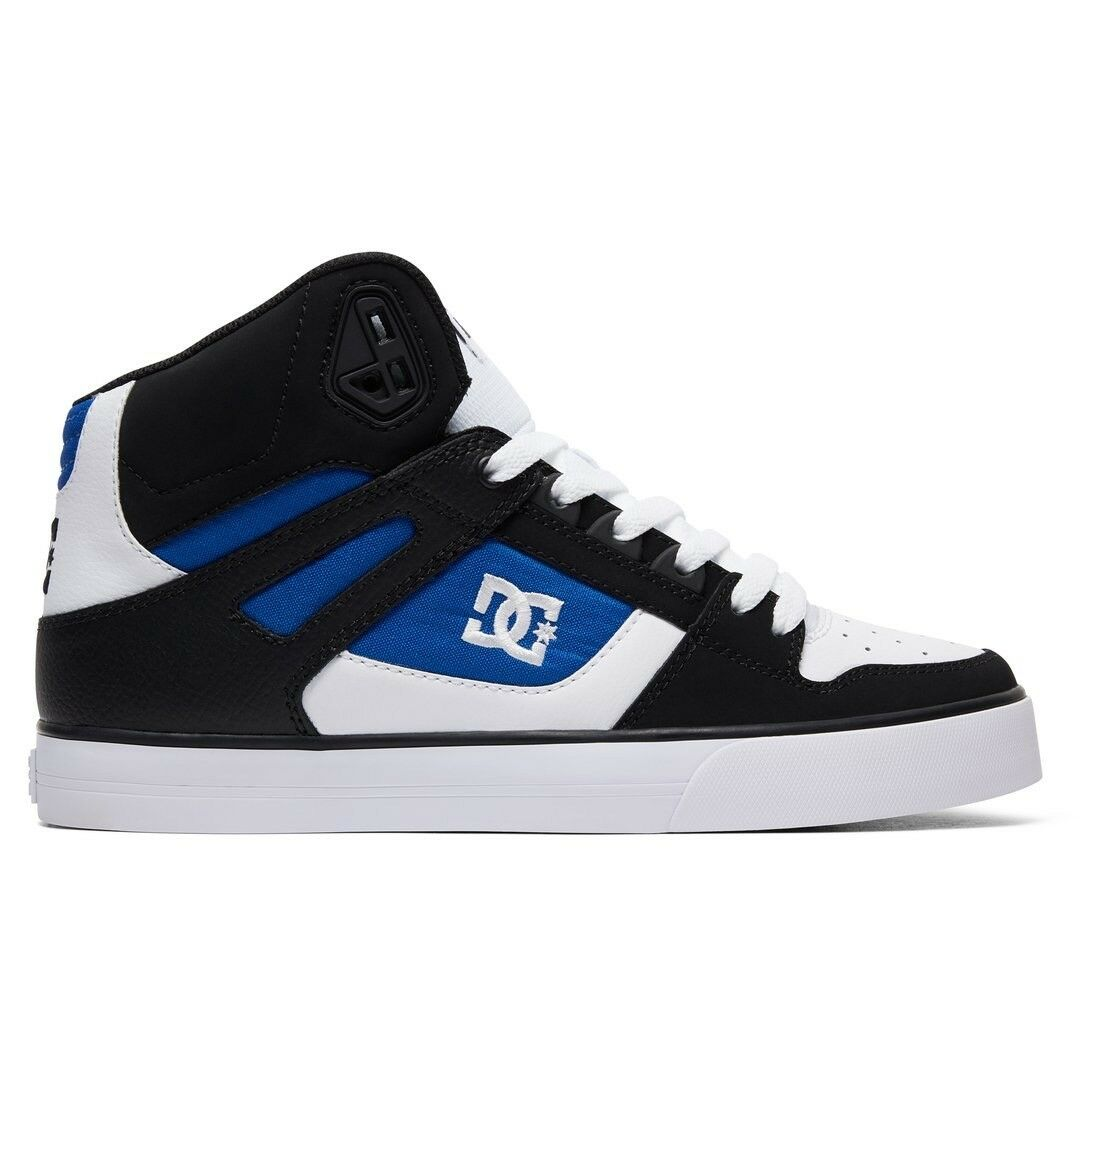 DC SHOES PURE HIGH TOP WC WHITE BLUE BLACK TRAINERS (SPARTAN HIGH)